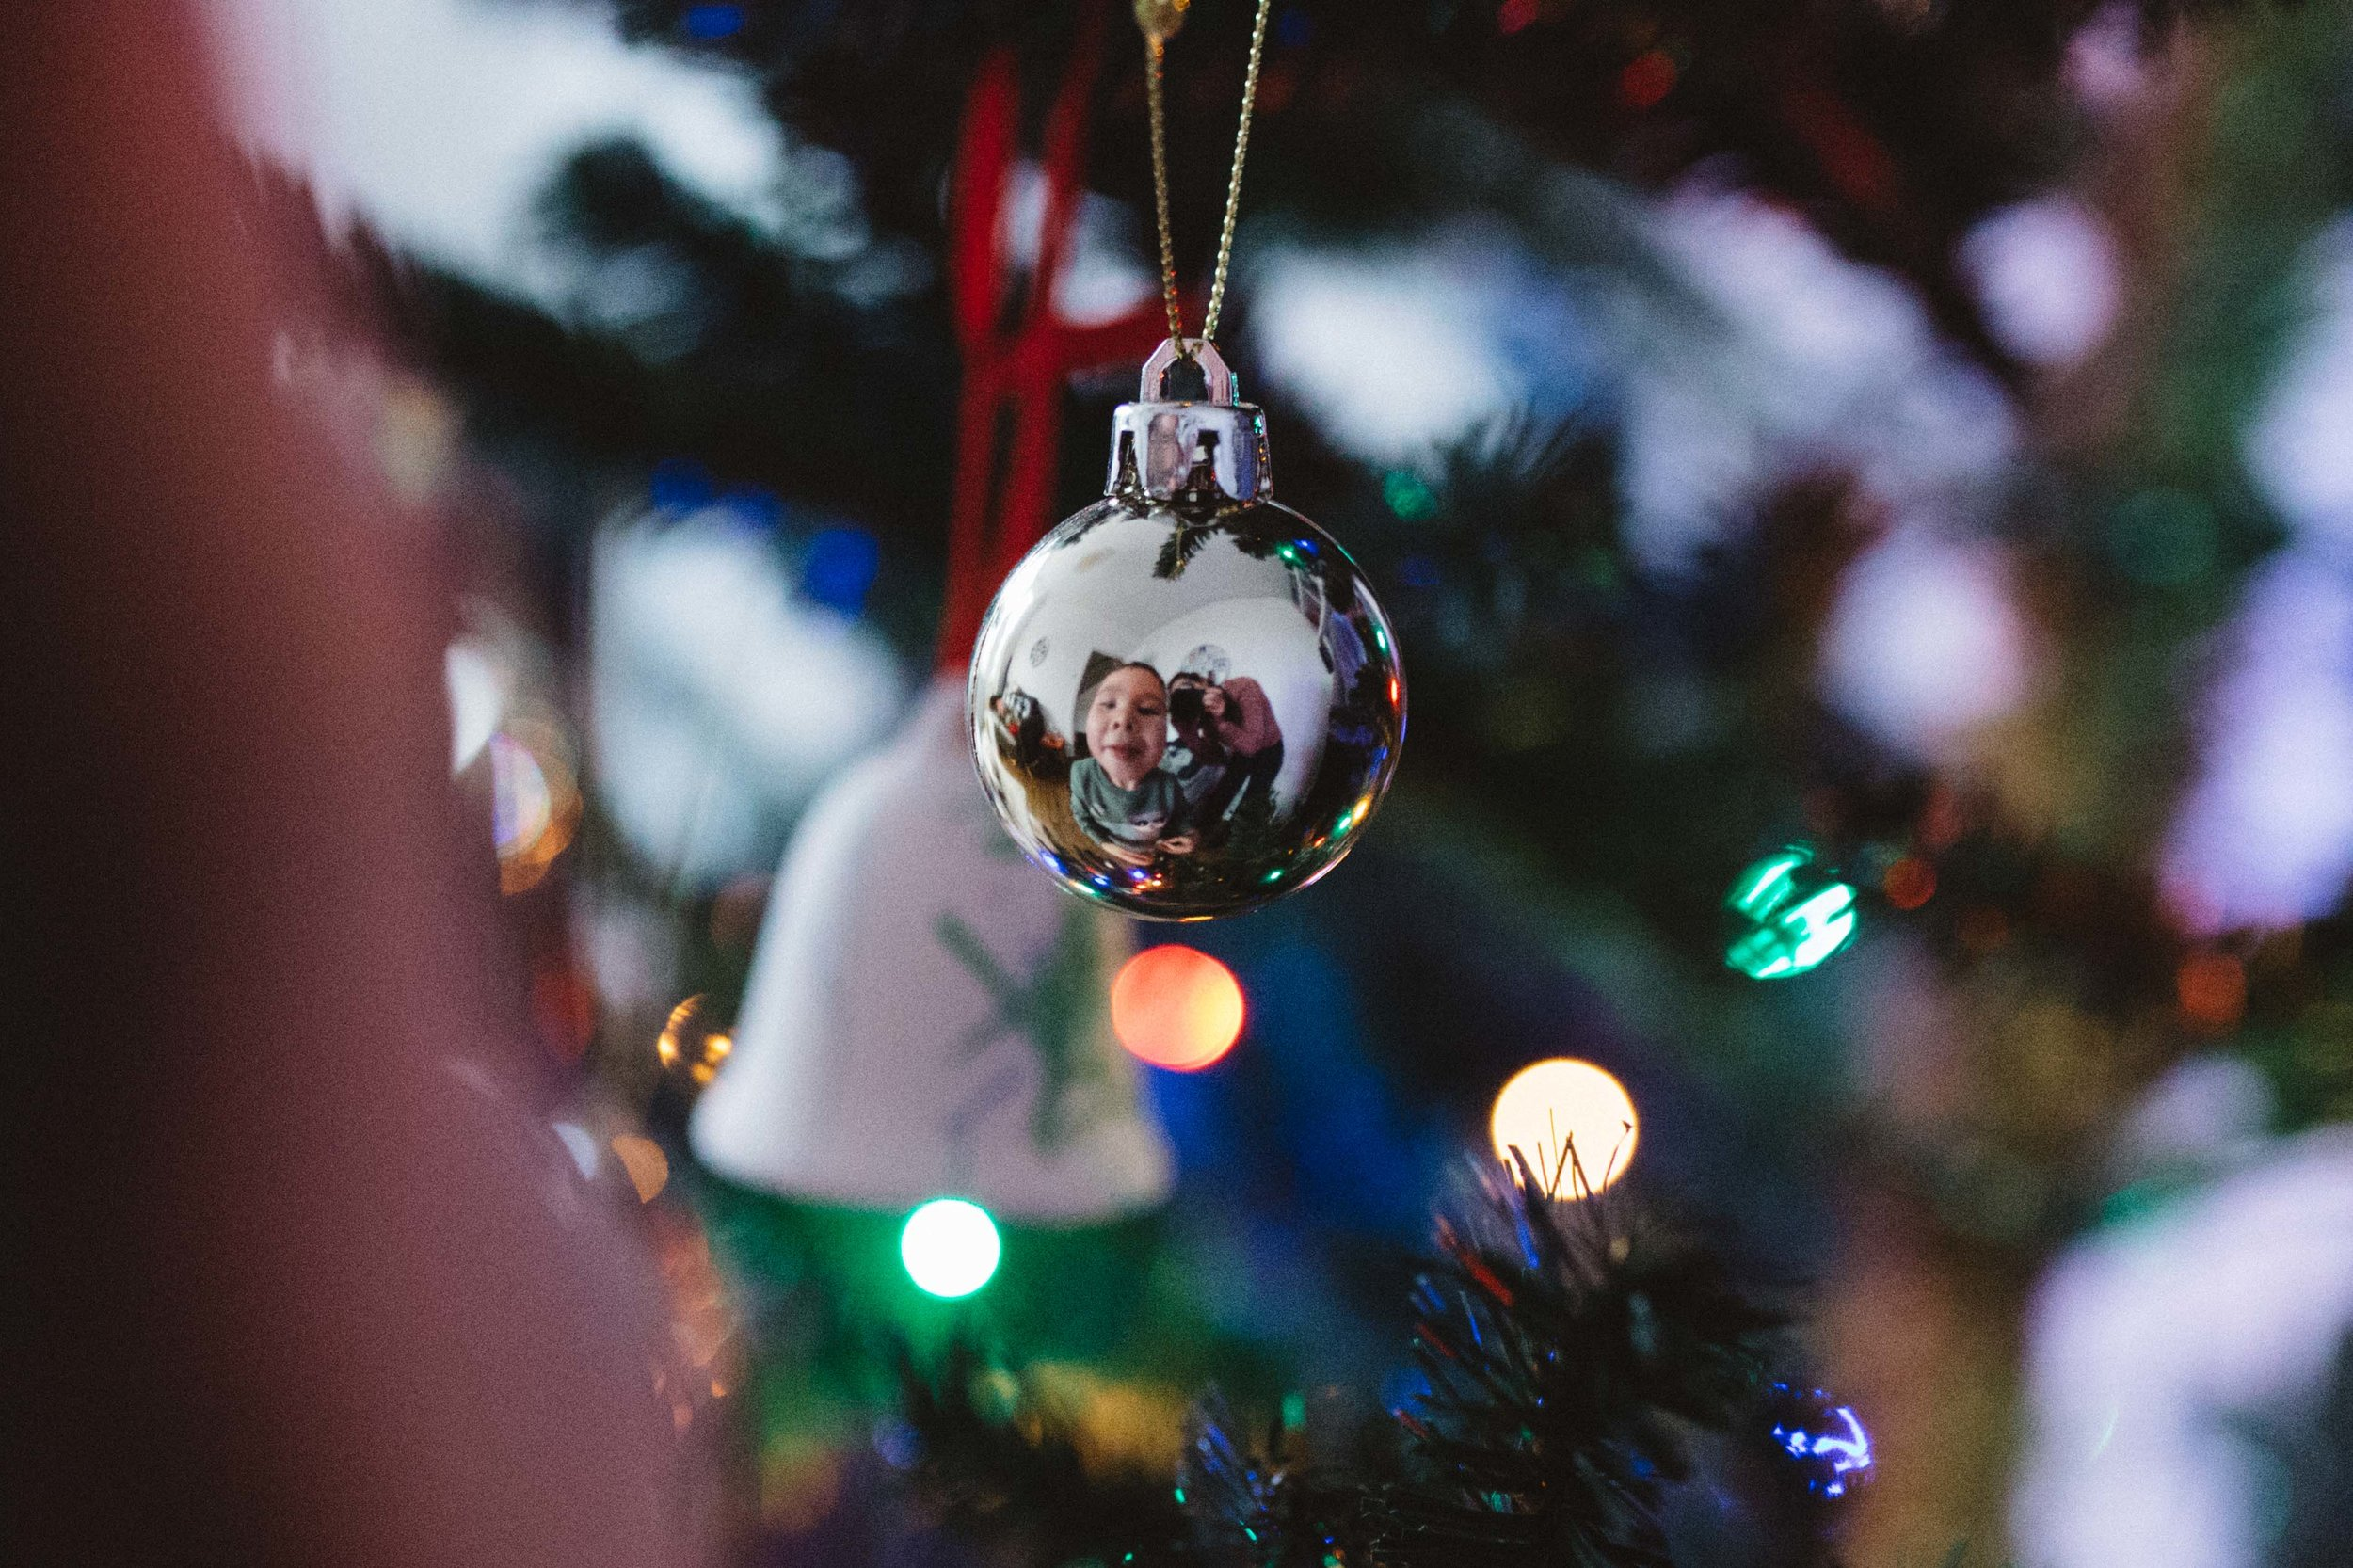 Reflection of boy in Christmas baubble